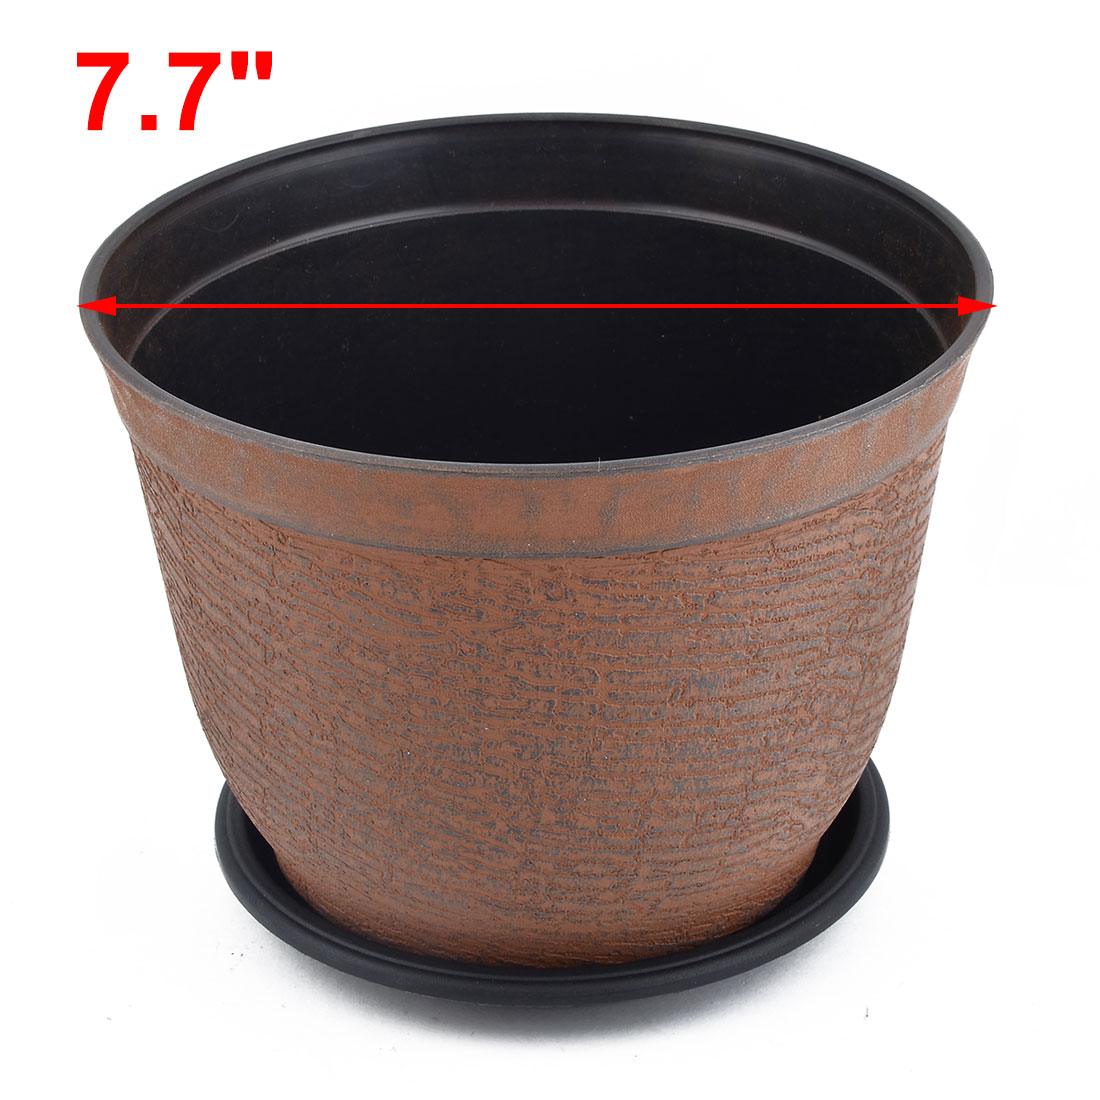 Apartment Plastic Round Retro Style Flower Planting Pot Holder Container 5pcs - image 1 of 4